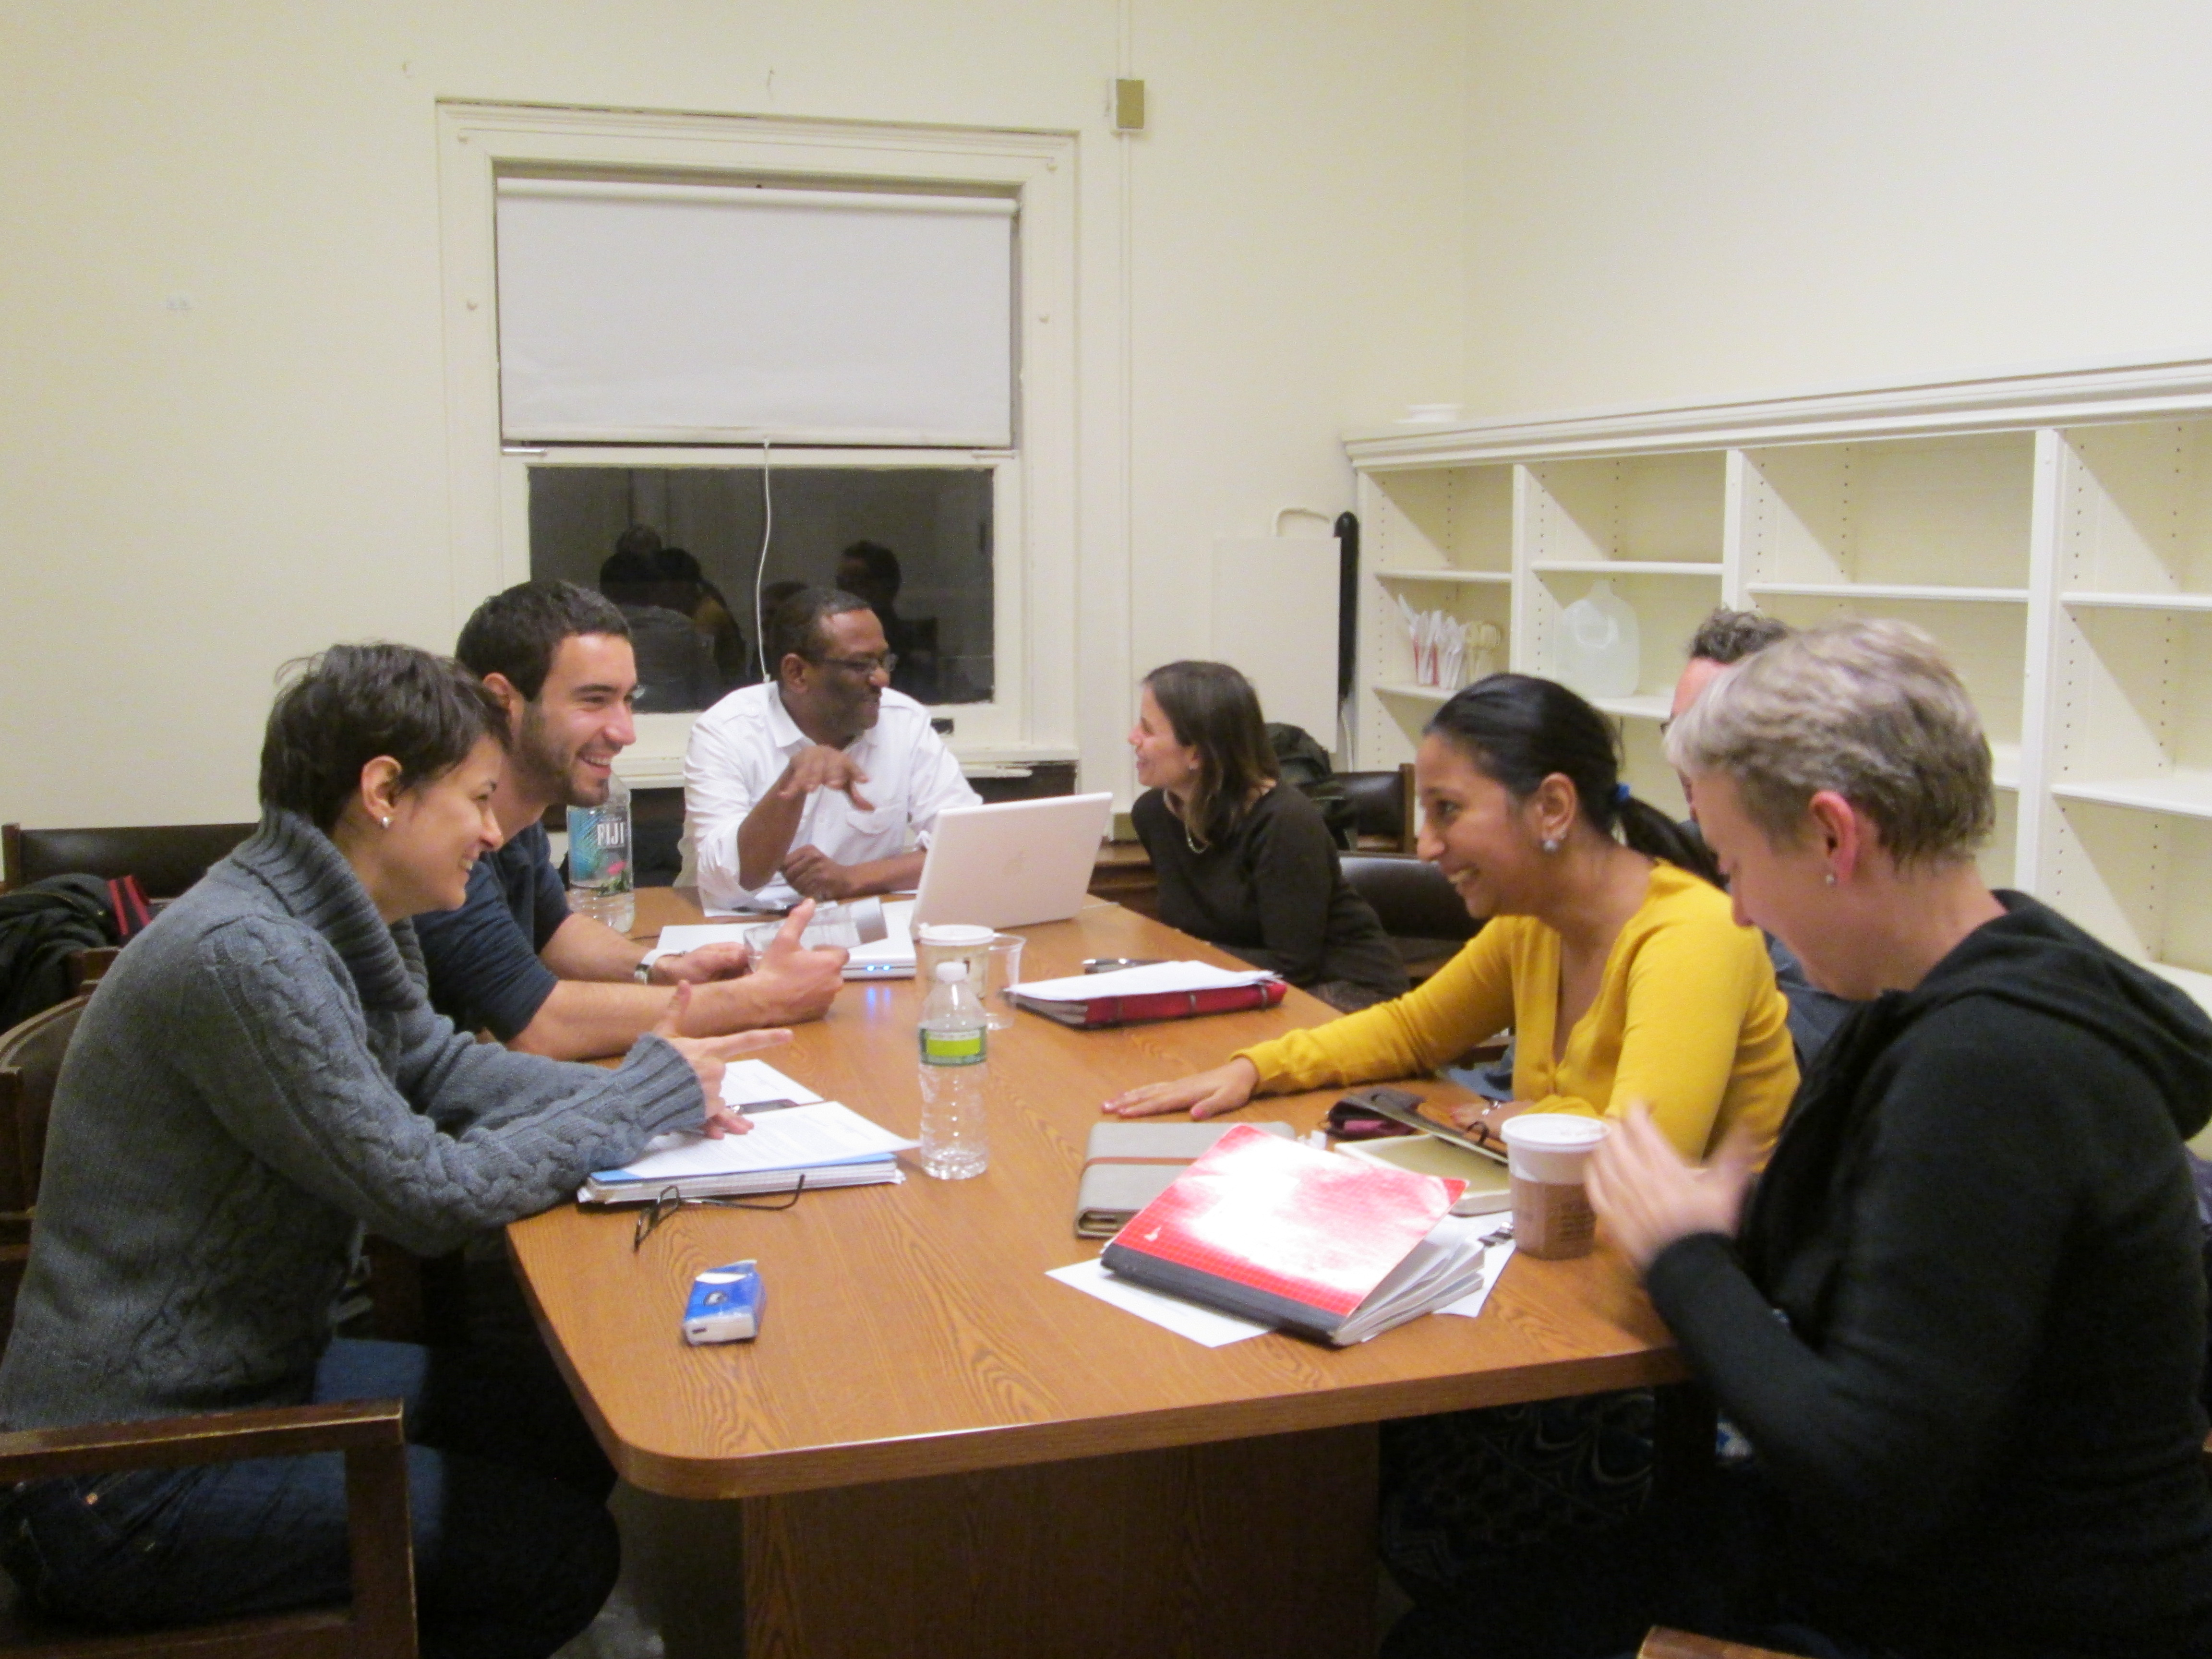 Fellows at the Institute for the Study of Human Rights at Columbia sit down to discuss where their research projects will head next.